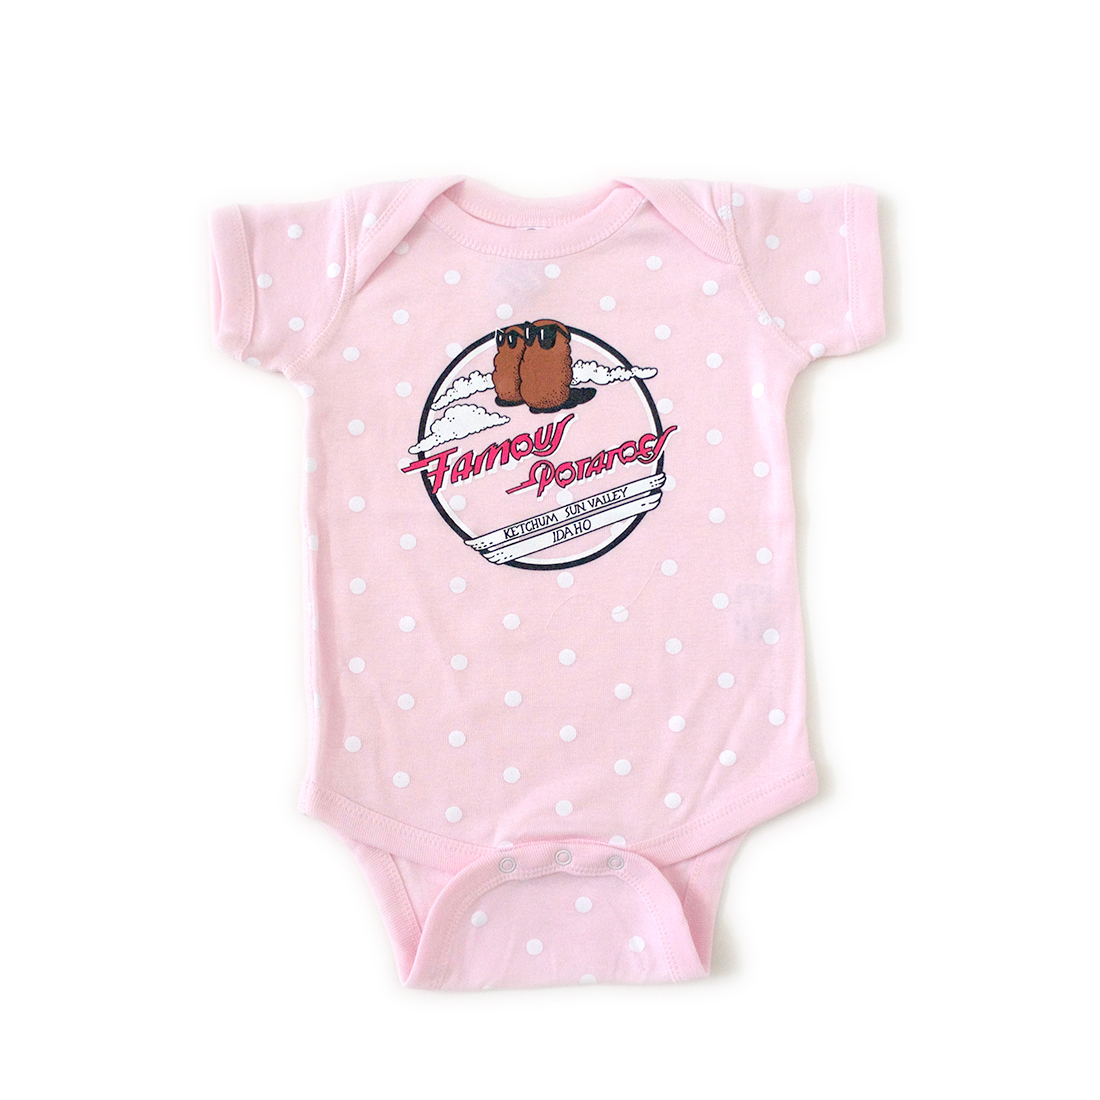 Famous Potatoes Infant - Onsie Pink/White Polka Dots